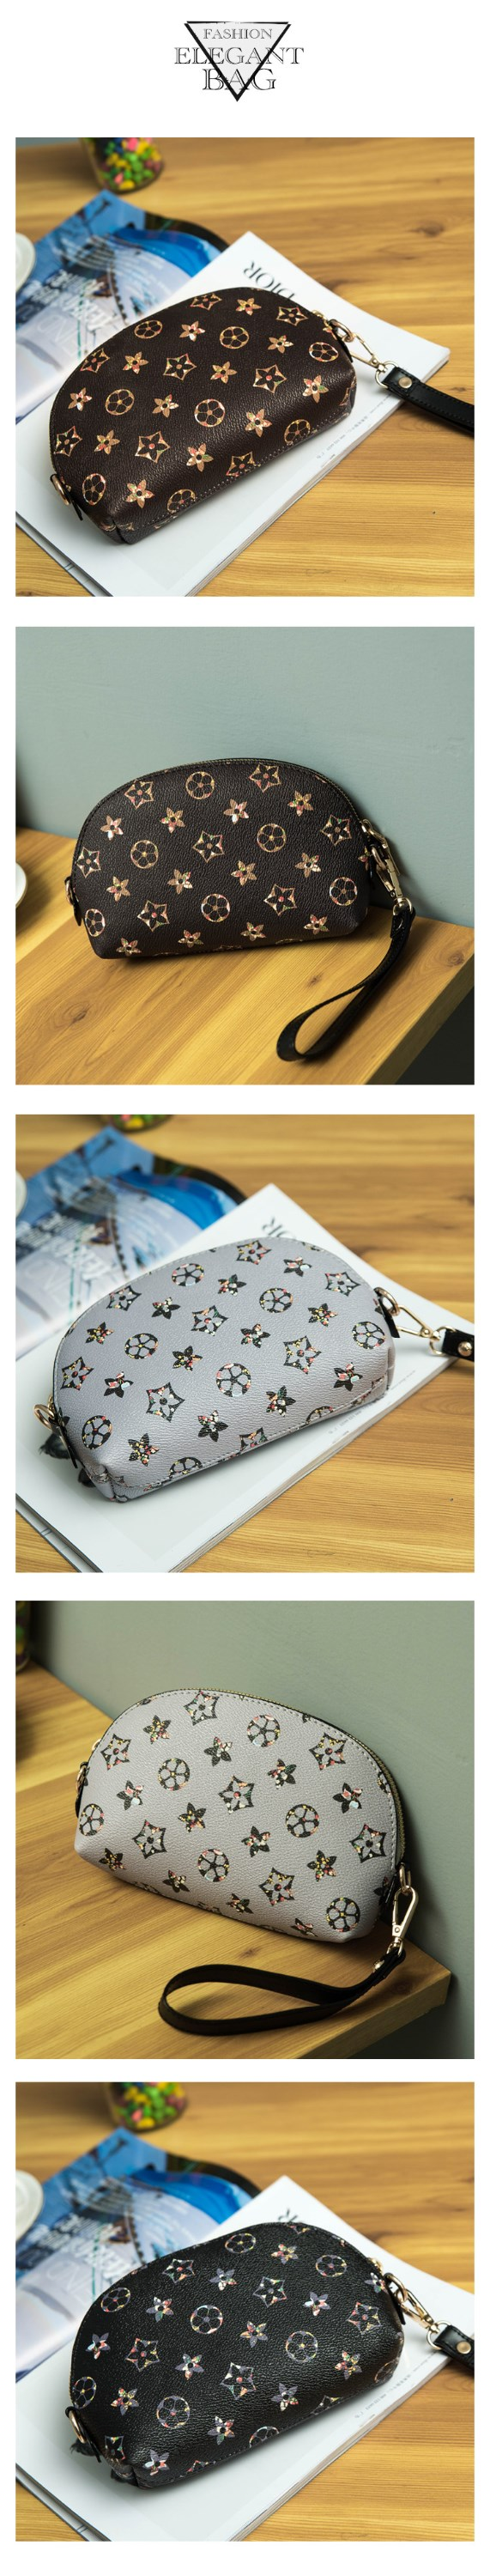 Wash gargle bag 2017 flowers Cosmetic bag lady /Small hand bag